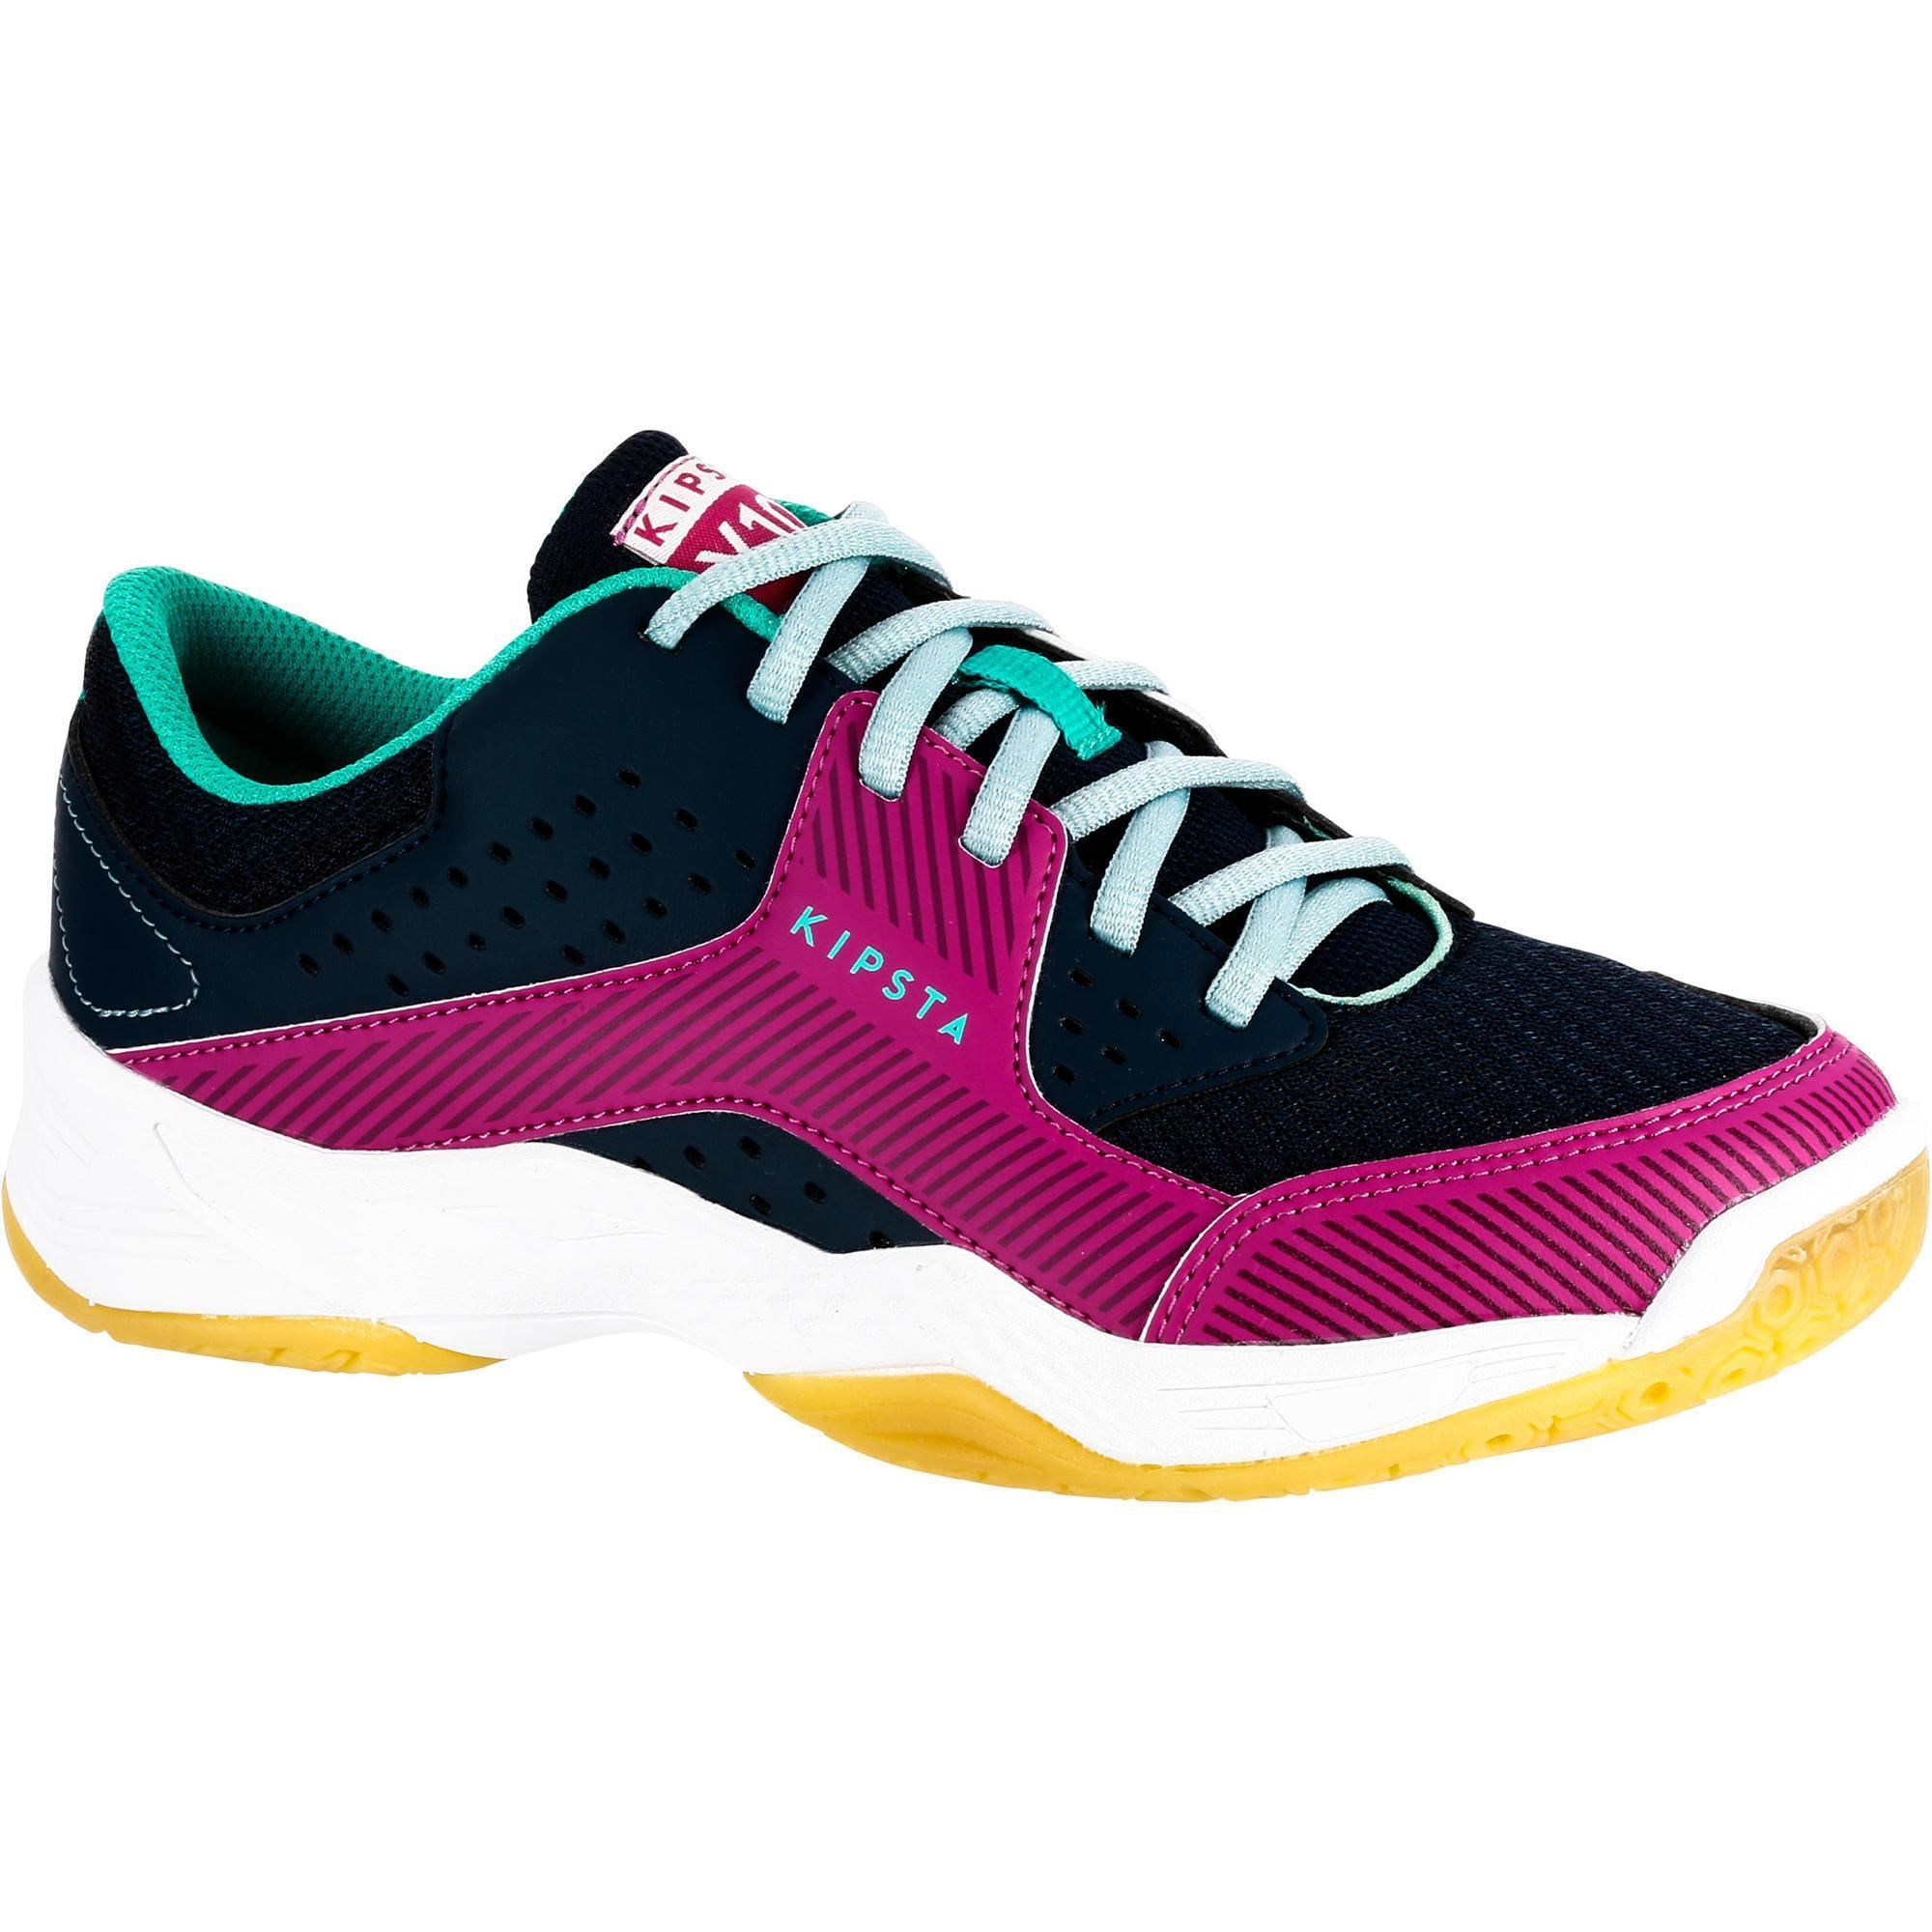 Kipsta Volleybalschoenen kind V100